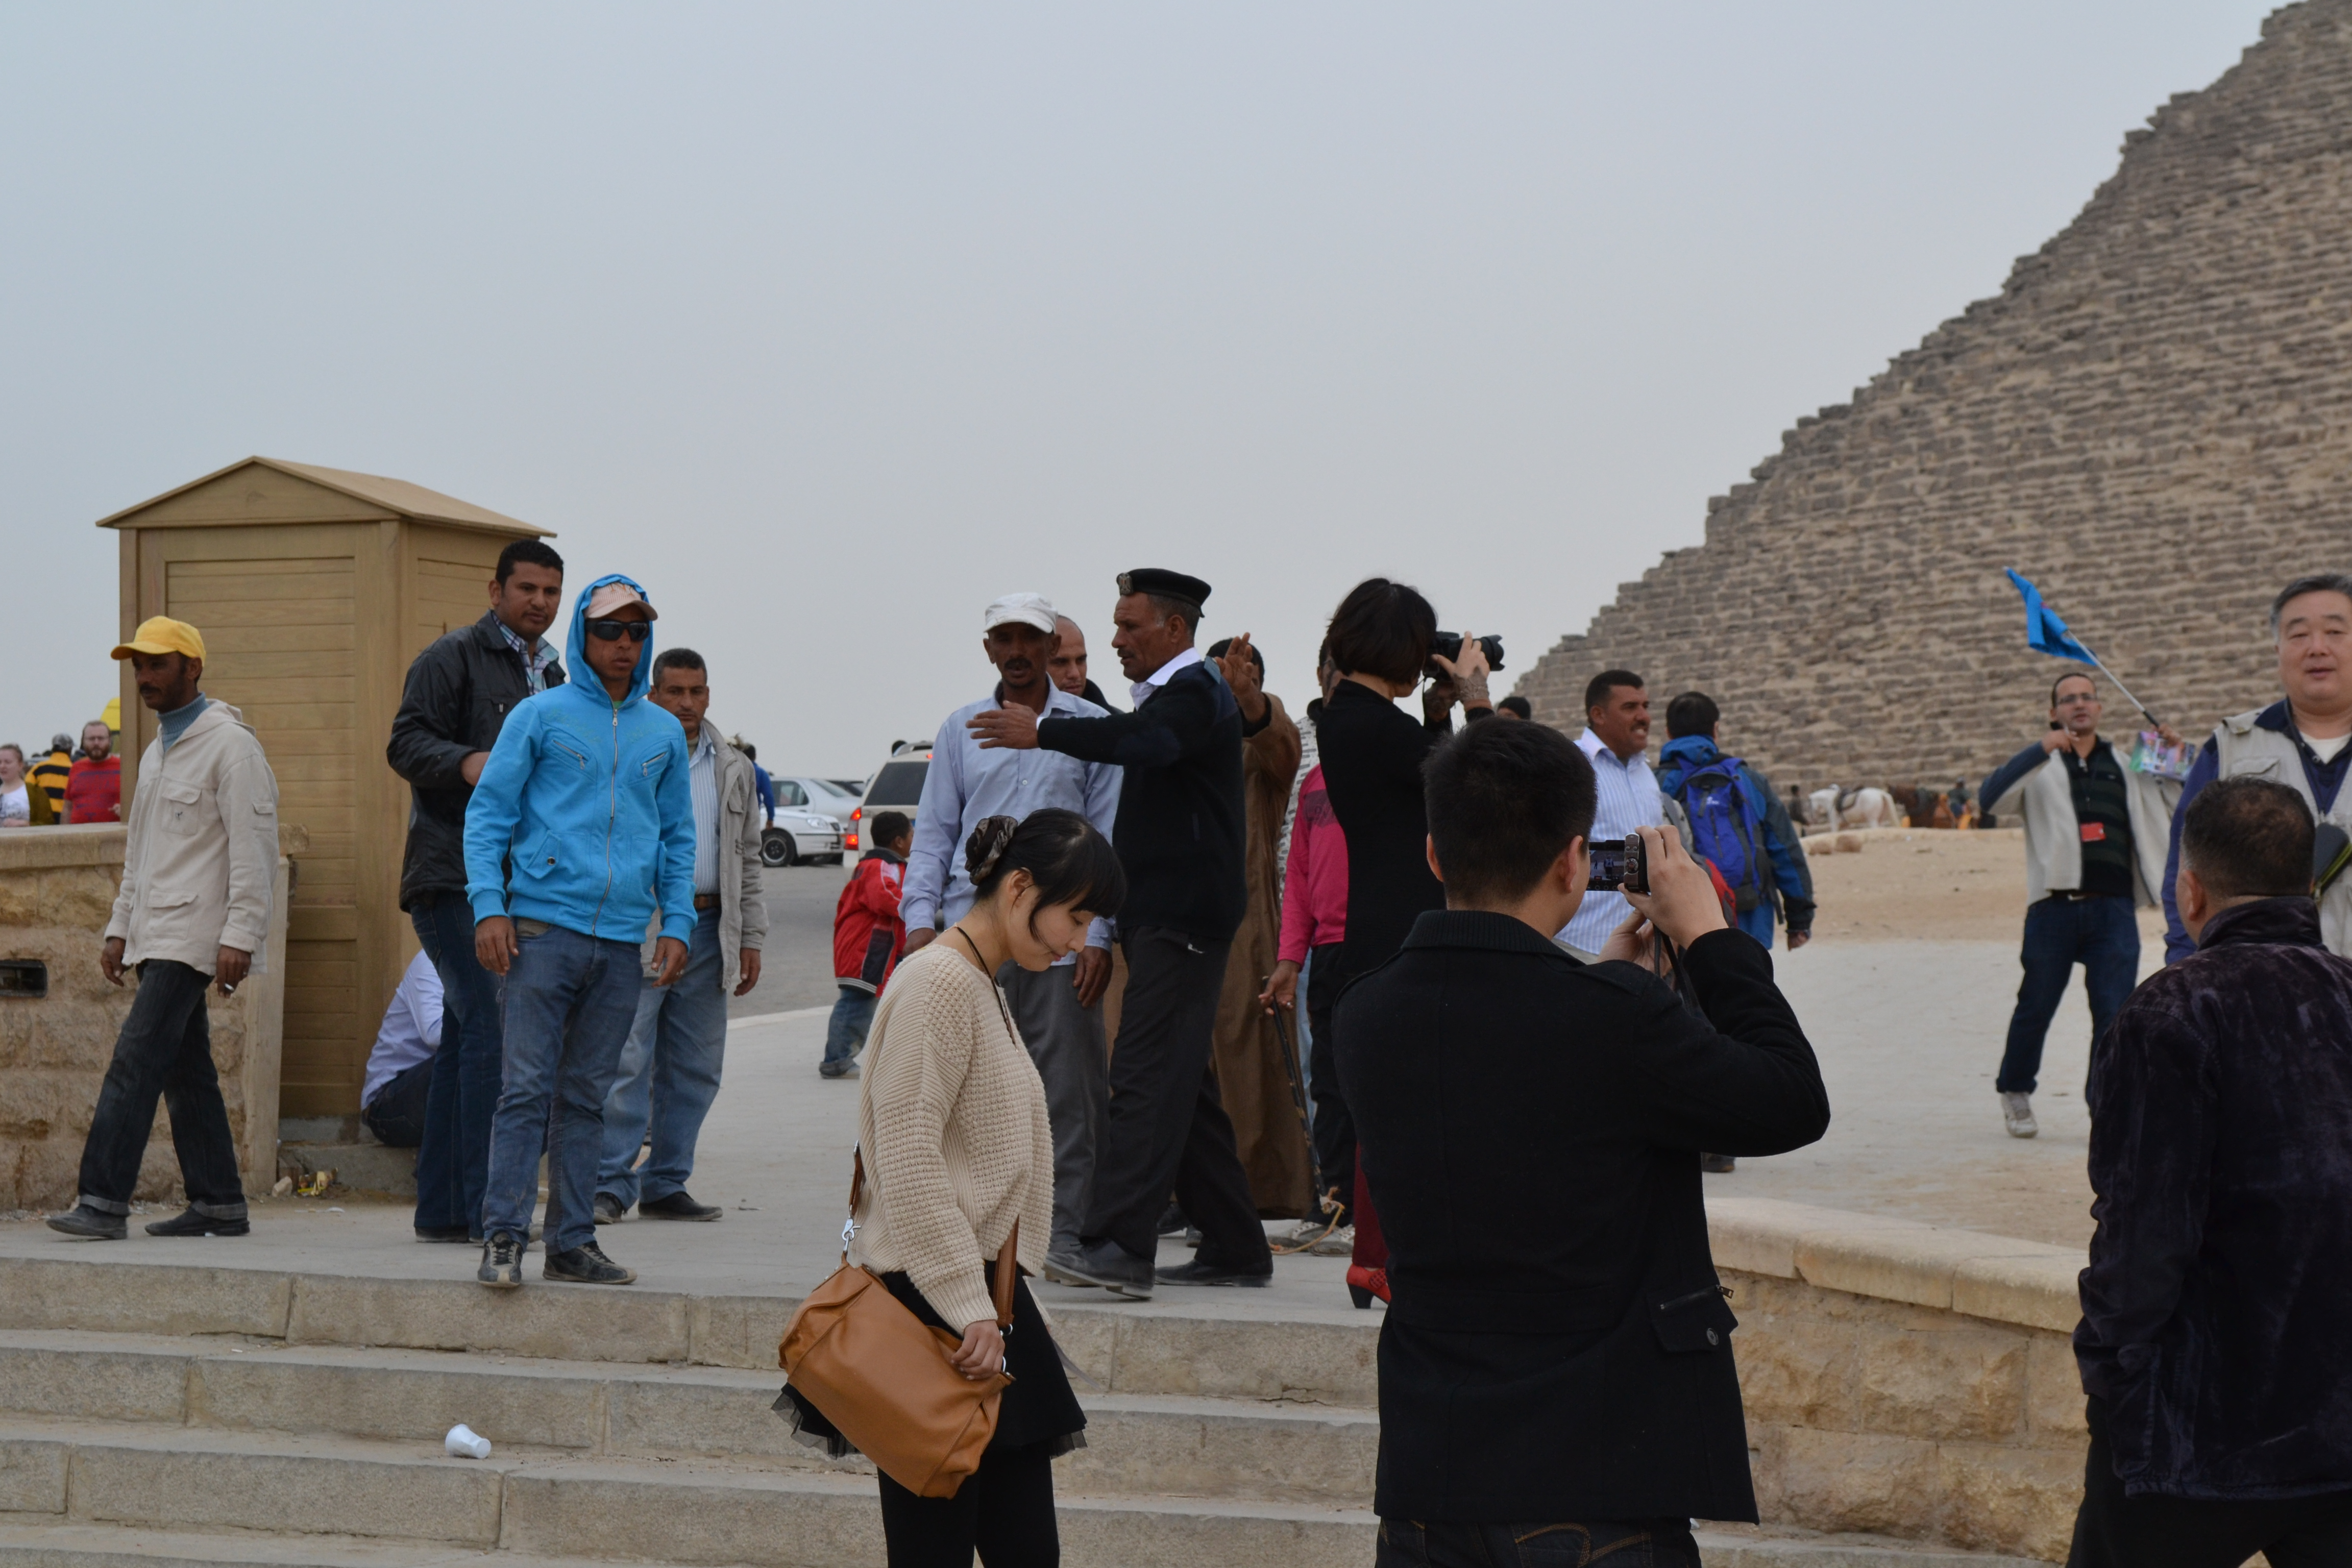 Merchants waiting for tourists to step into the complex. More harassment awaits!